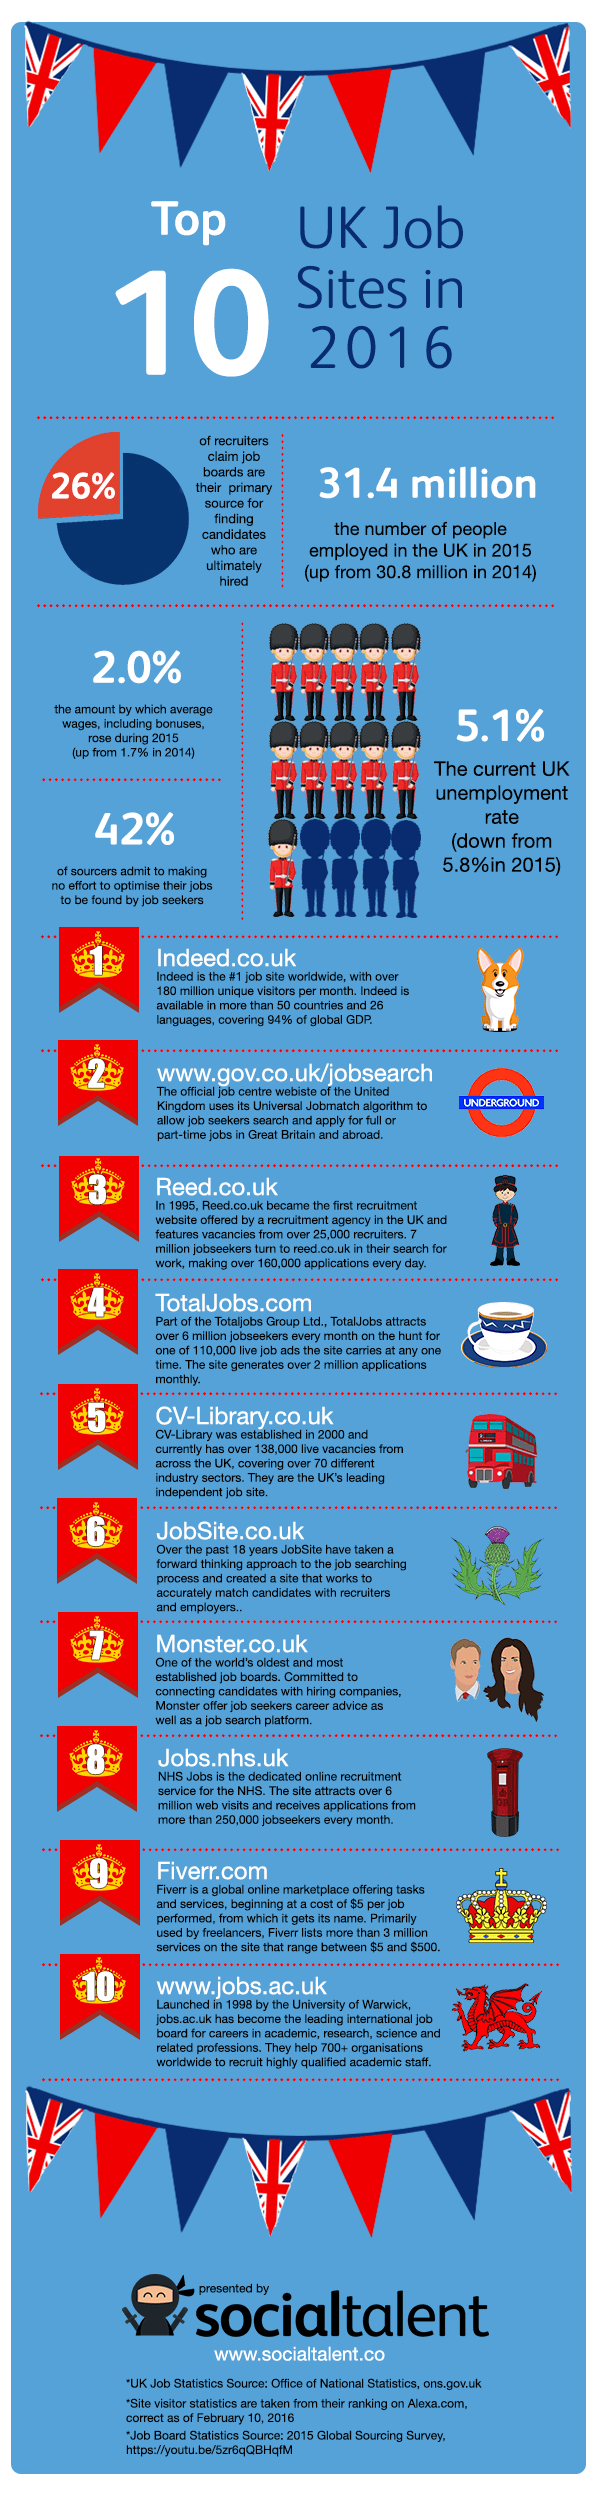 the best uk job sites 2016